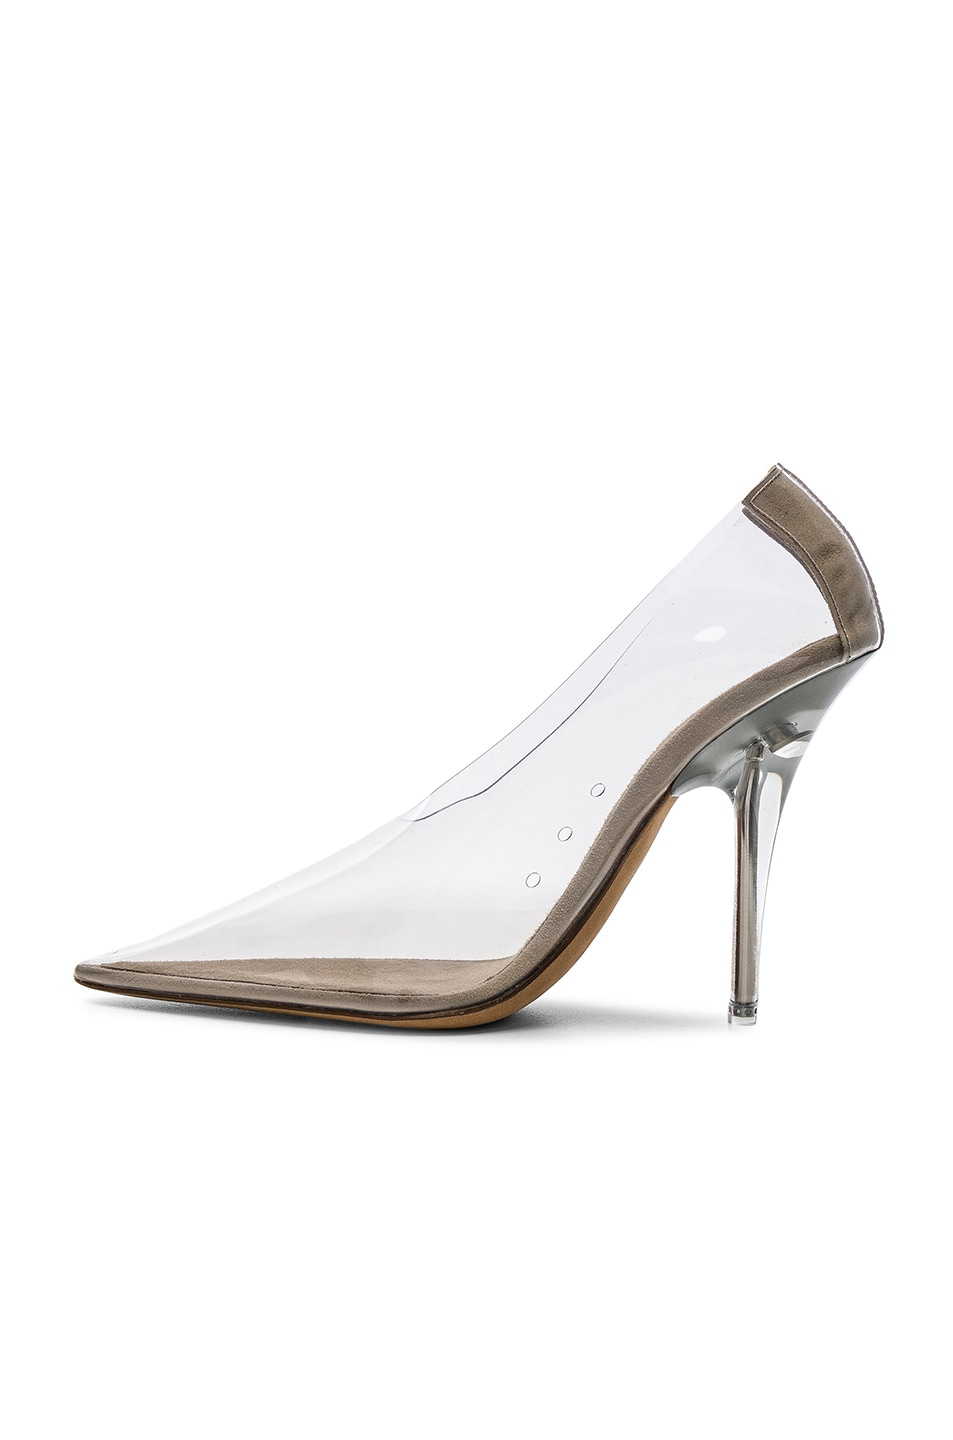 941a2dc6e Image 5 of YEEZY Season 5 PVC Pumps in Clear